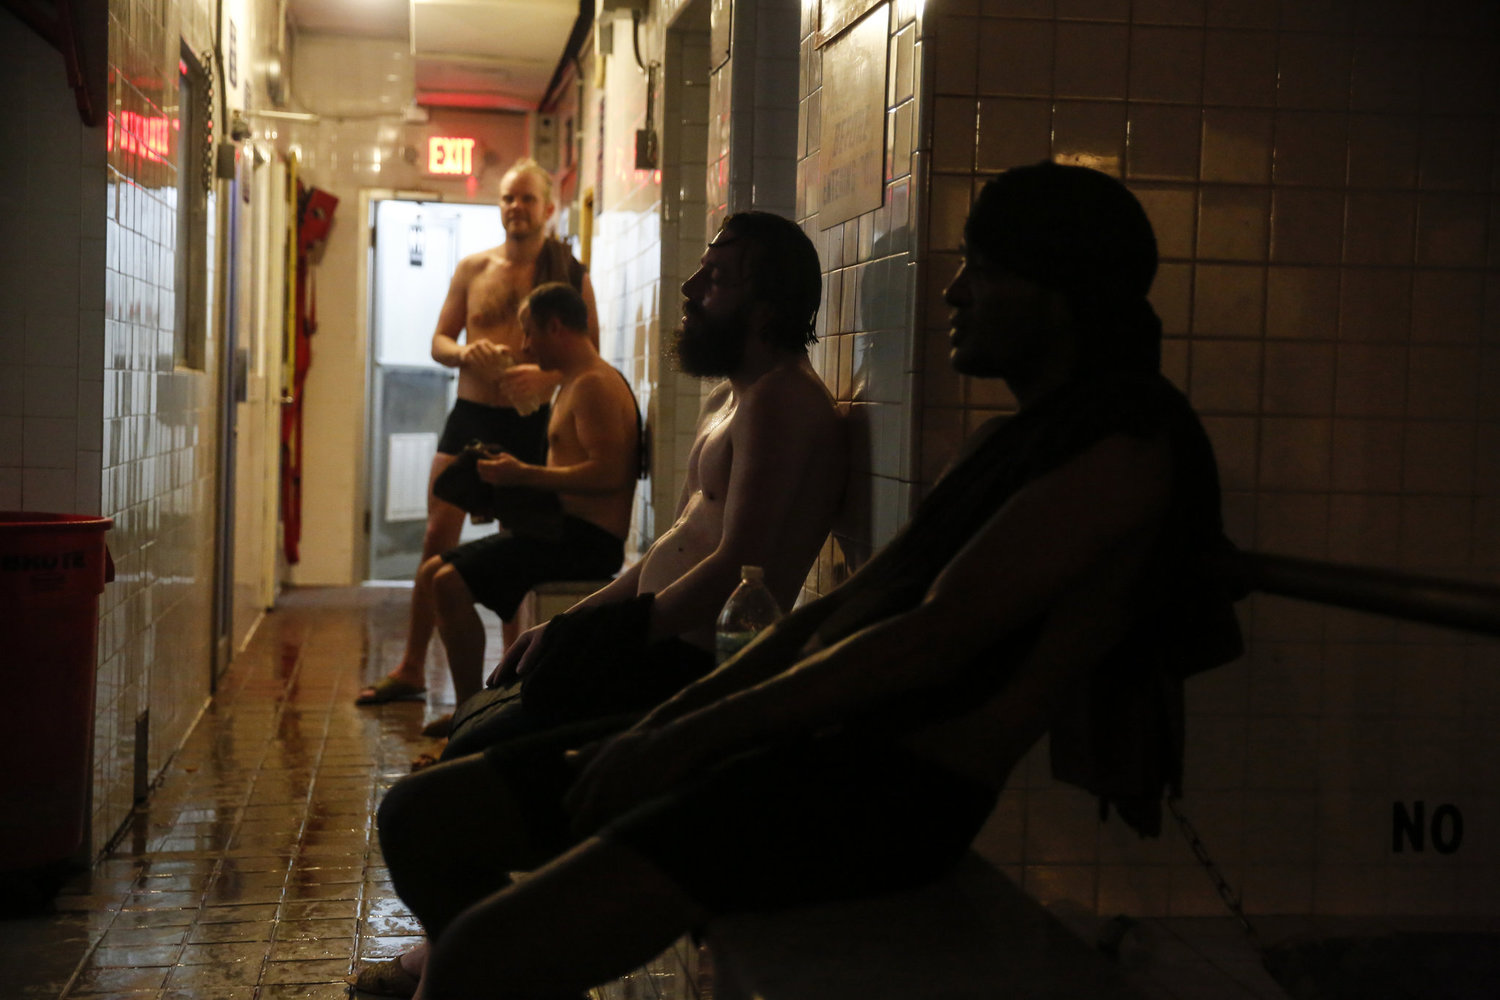 Visitors relax in the common area between saunas, steam rooms and an ice-cold pool in the East Village bathhouse.